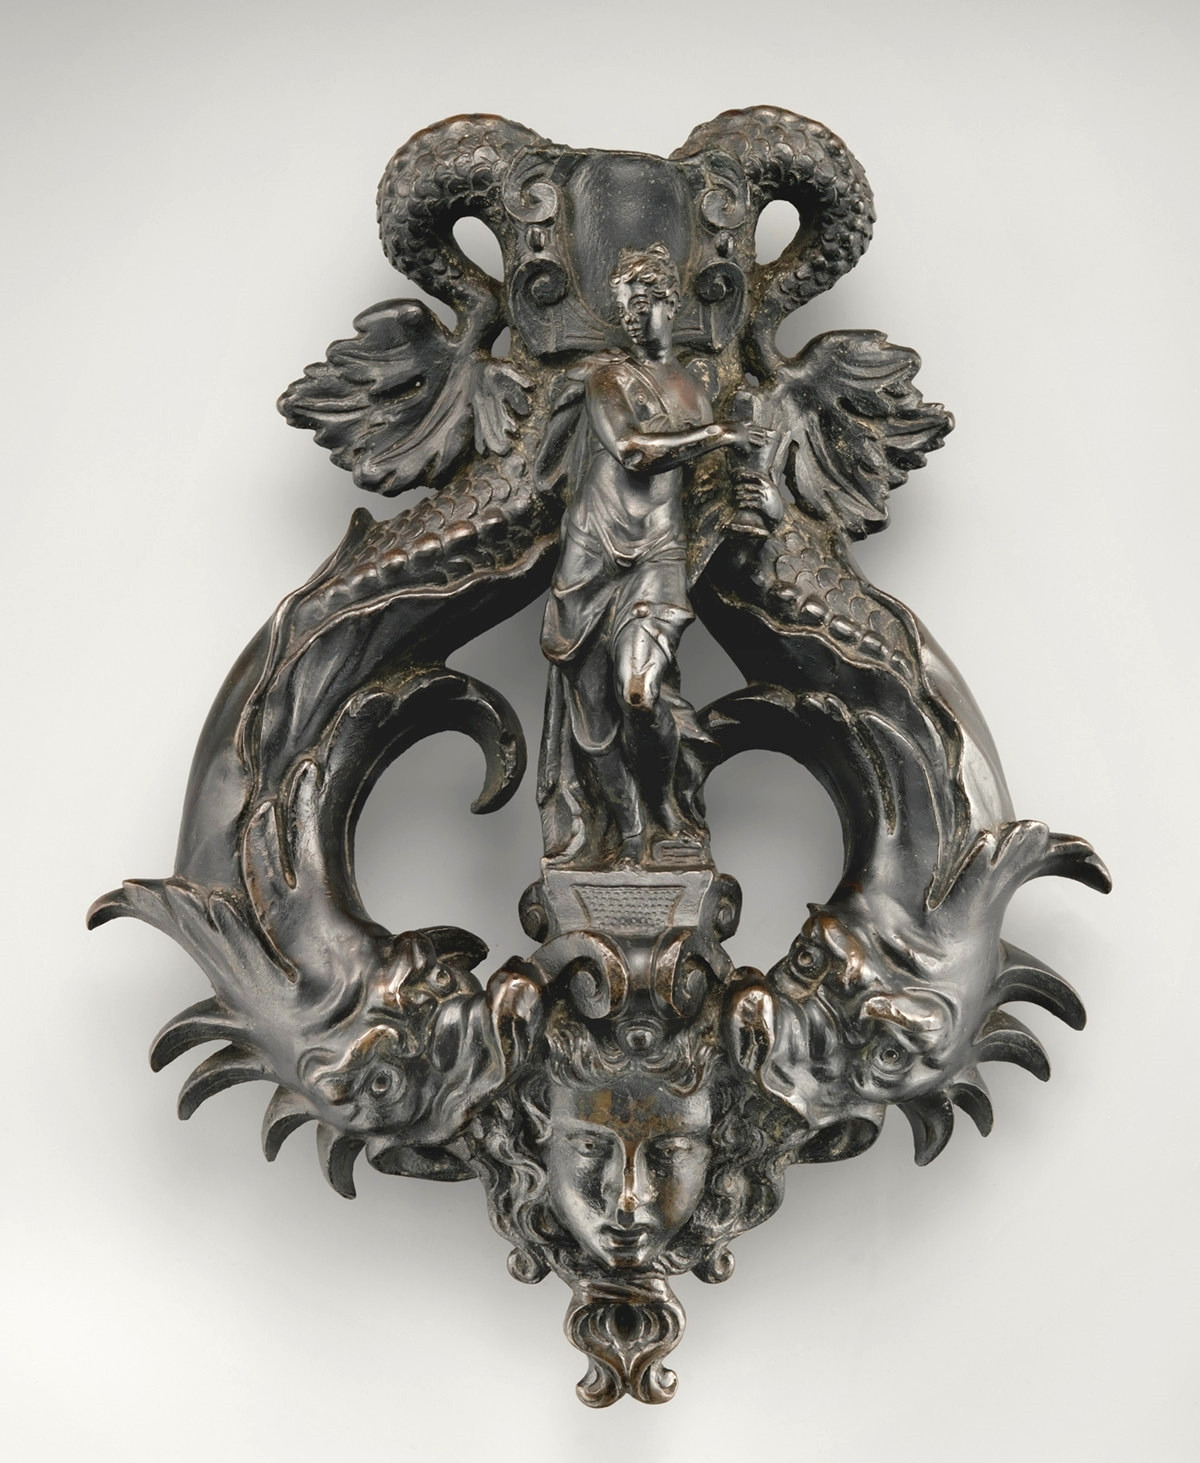 Late 16th century. Venice. Bronze. metmuseum